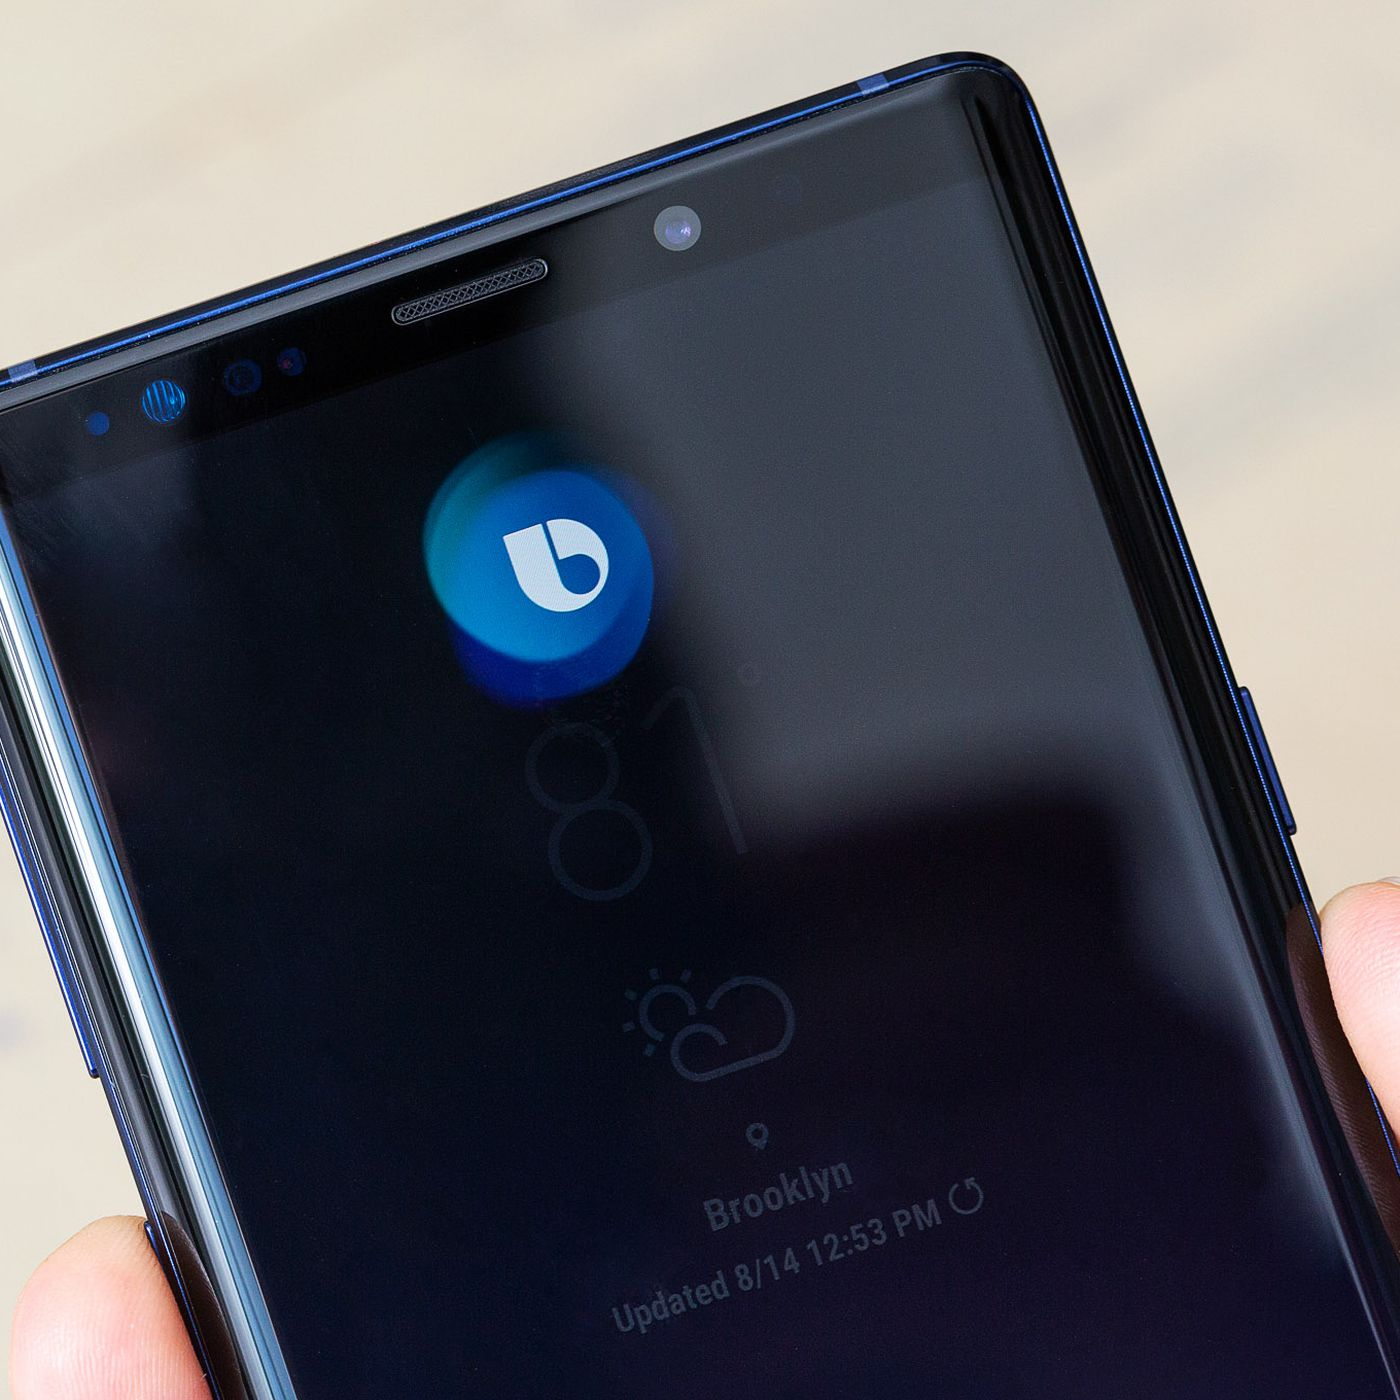 You can't turn off Bixby on the Note 9 - The Verge